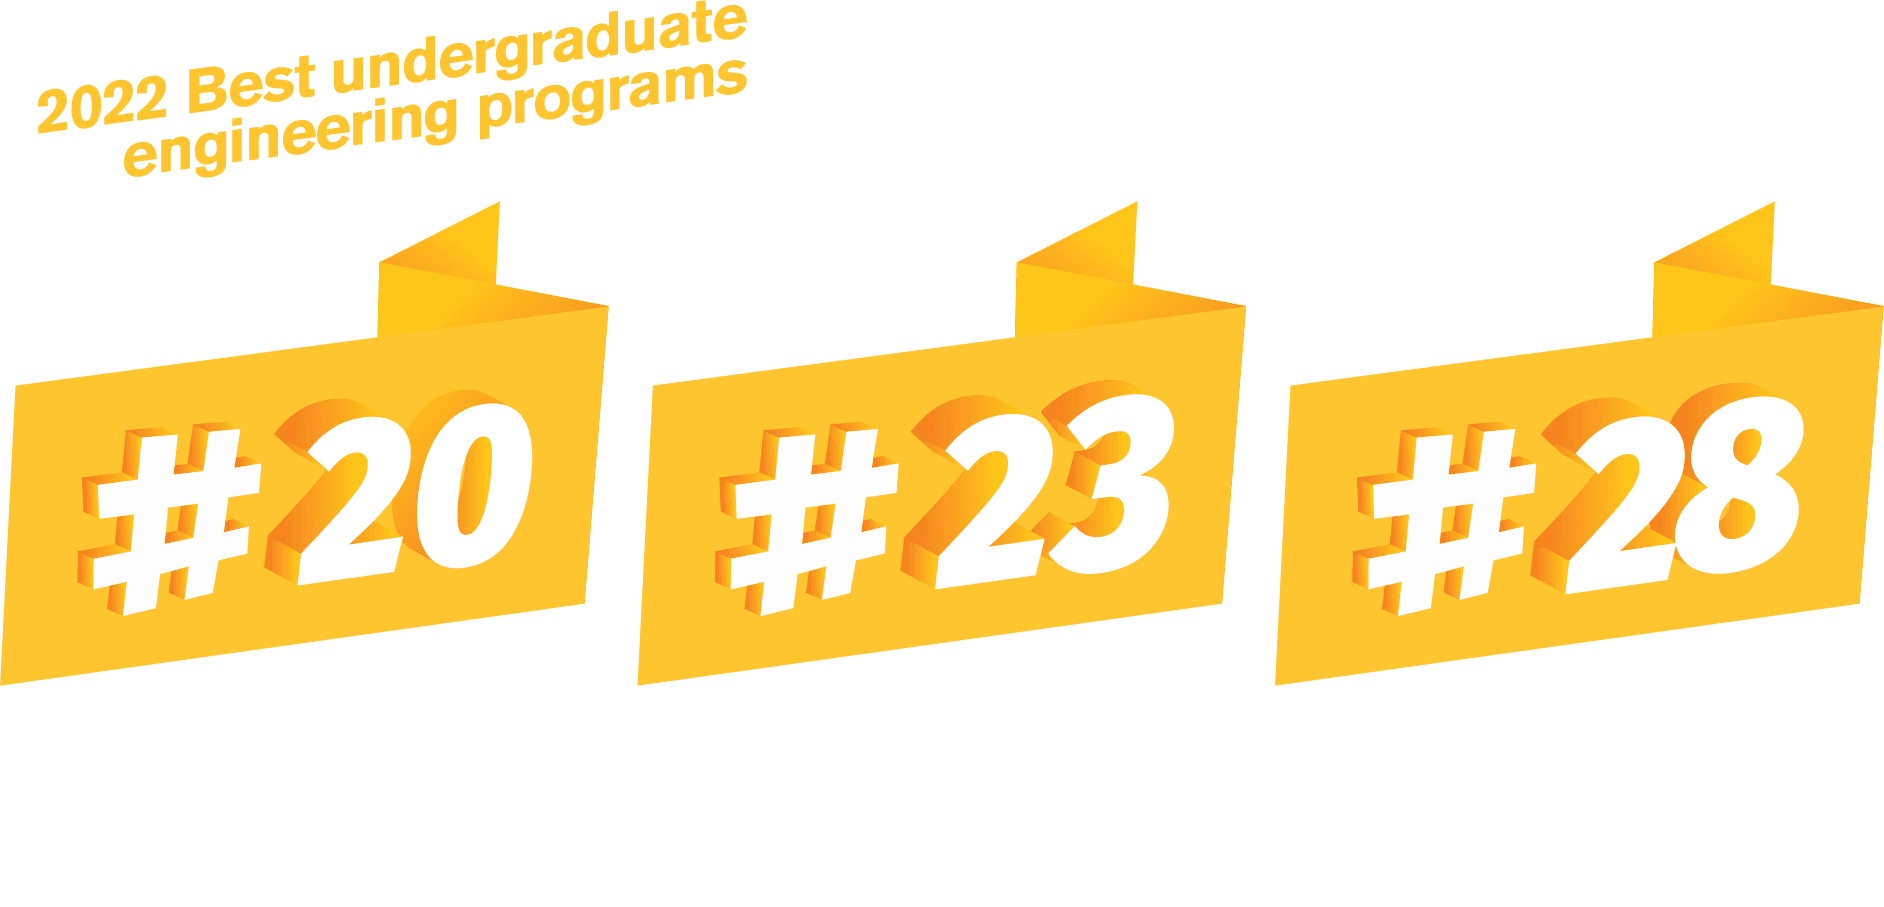 2022 Best undergraduate engineering programs, #20 Computer engineering, #23 Artificial intelligence (specialty of computer science), and #28 Cybersecurity (specialty of computer science), U.S. News & World Report, 2022